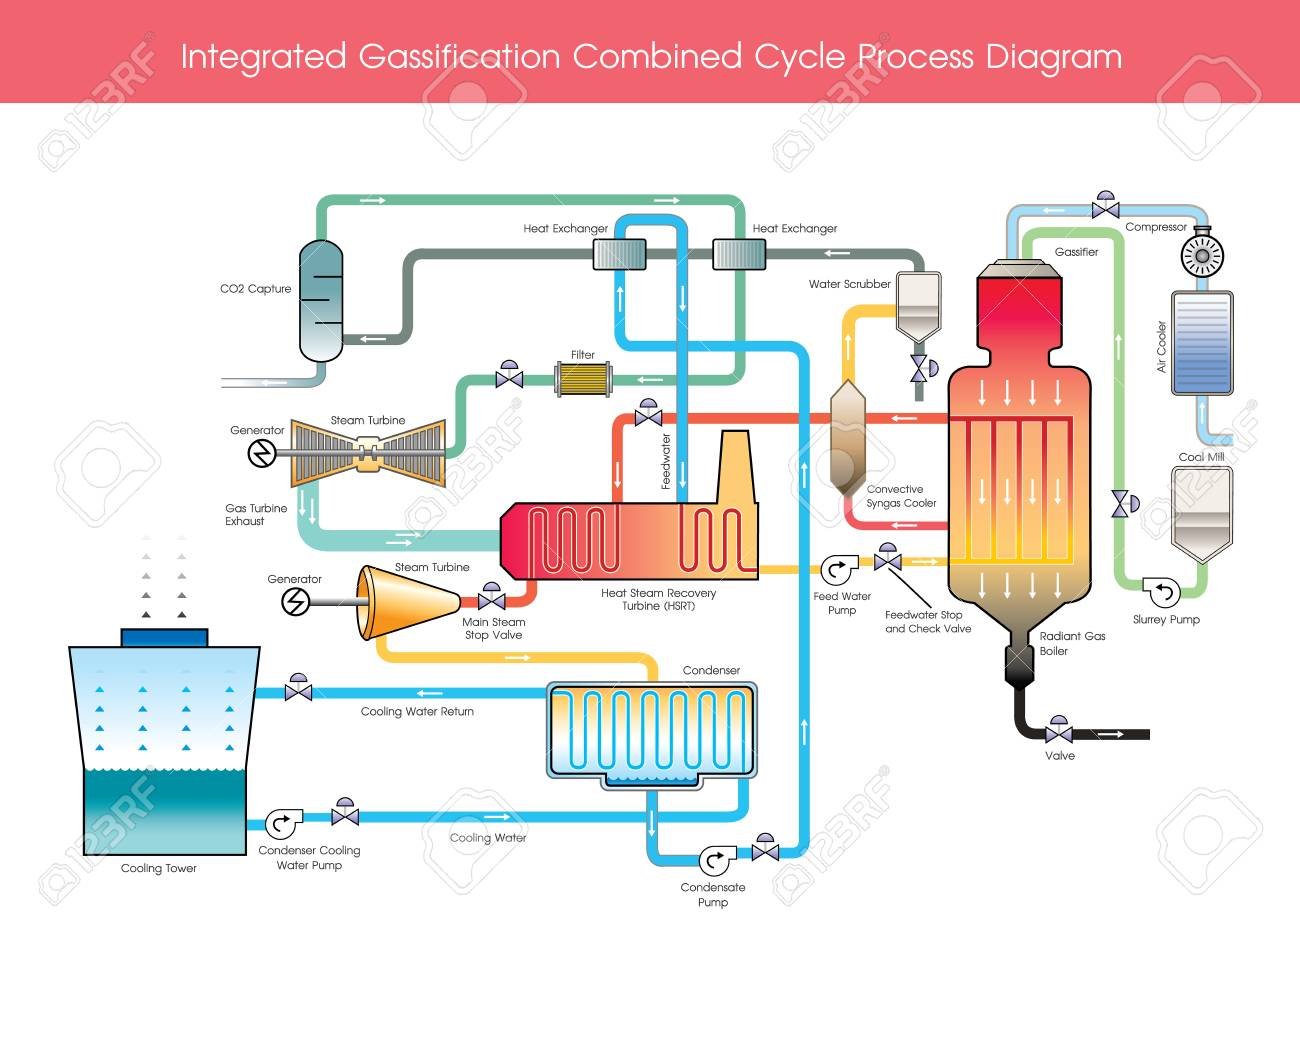 hight resolution of integrated gasification combined cycle process diagram wood gas is a syngas fuel which can be used as a fuel for furnaces stoves and vehicles in place of